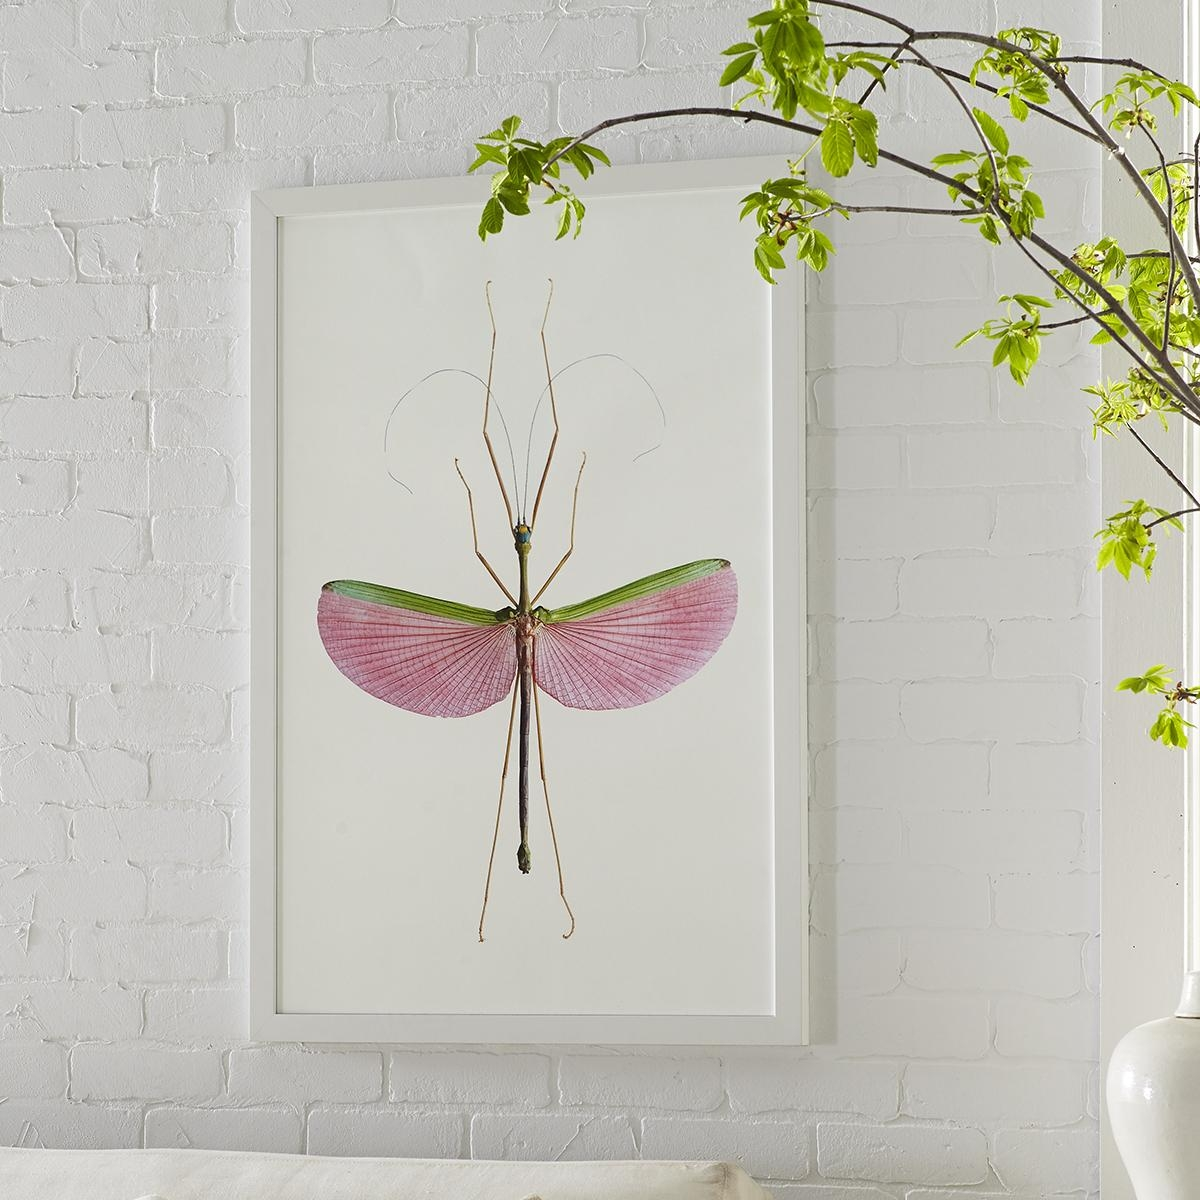 Stick Insect Wall Art – Watermelon Intended For Insect Wall Art (Image 18 of 20)